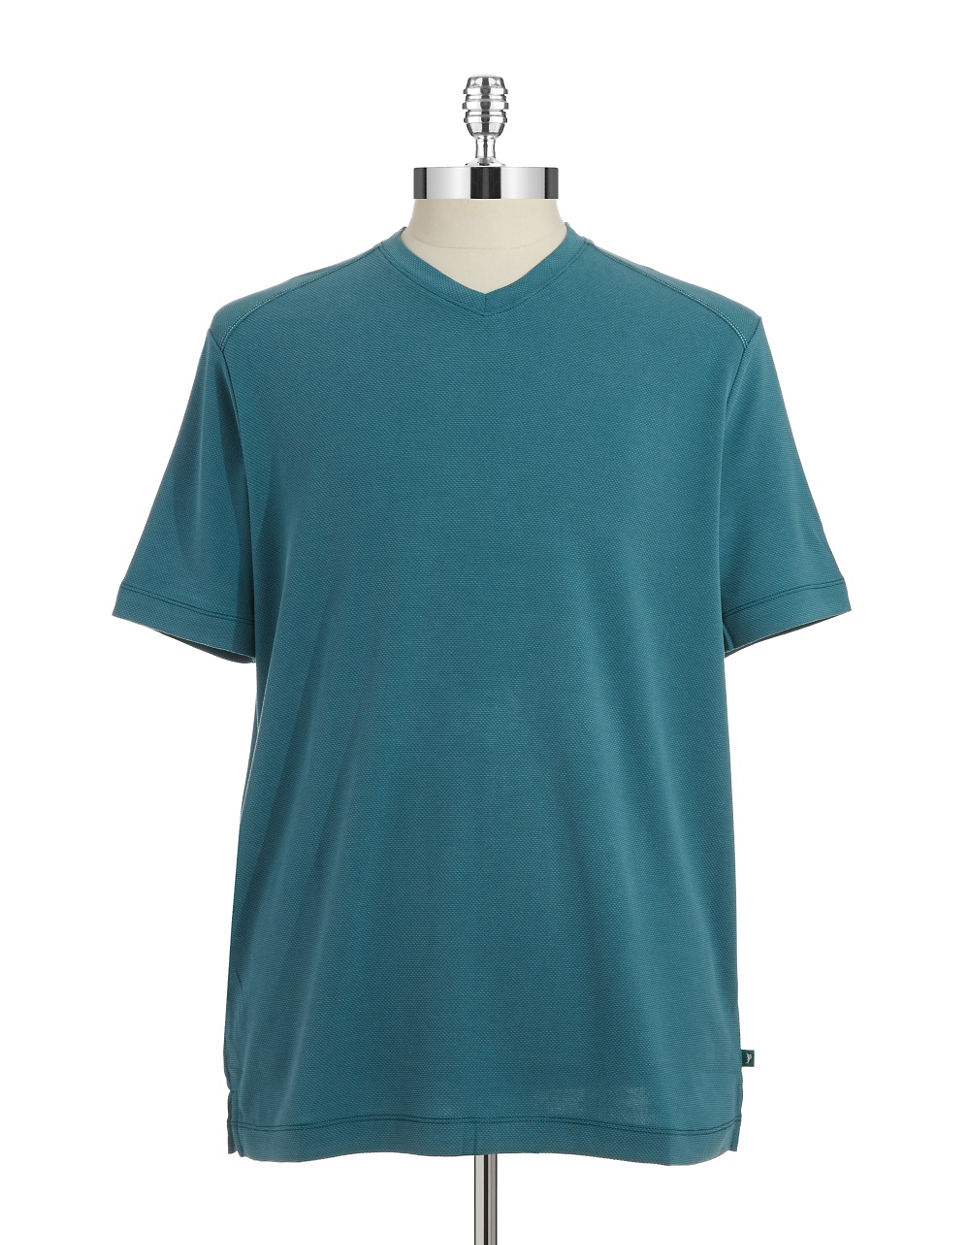 Tommy Bahama Textured V Neck T Shirt In Green For Men Lyst